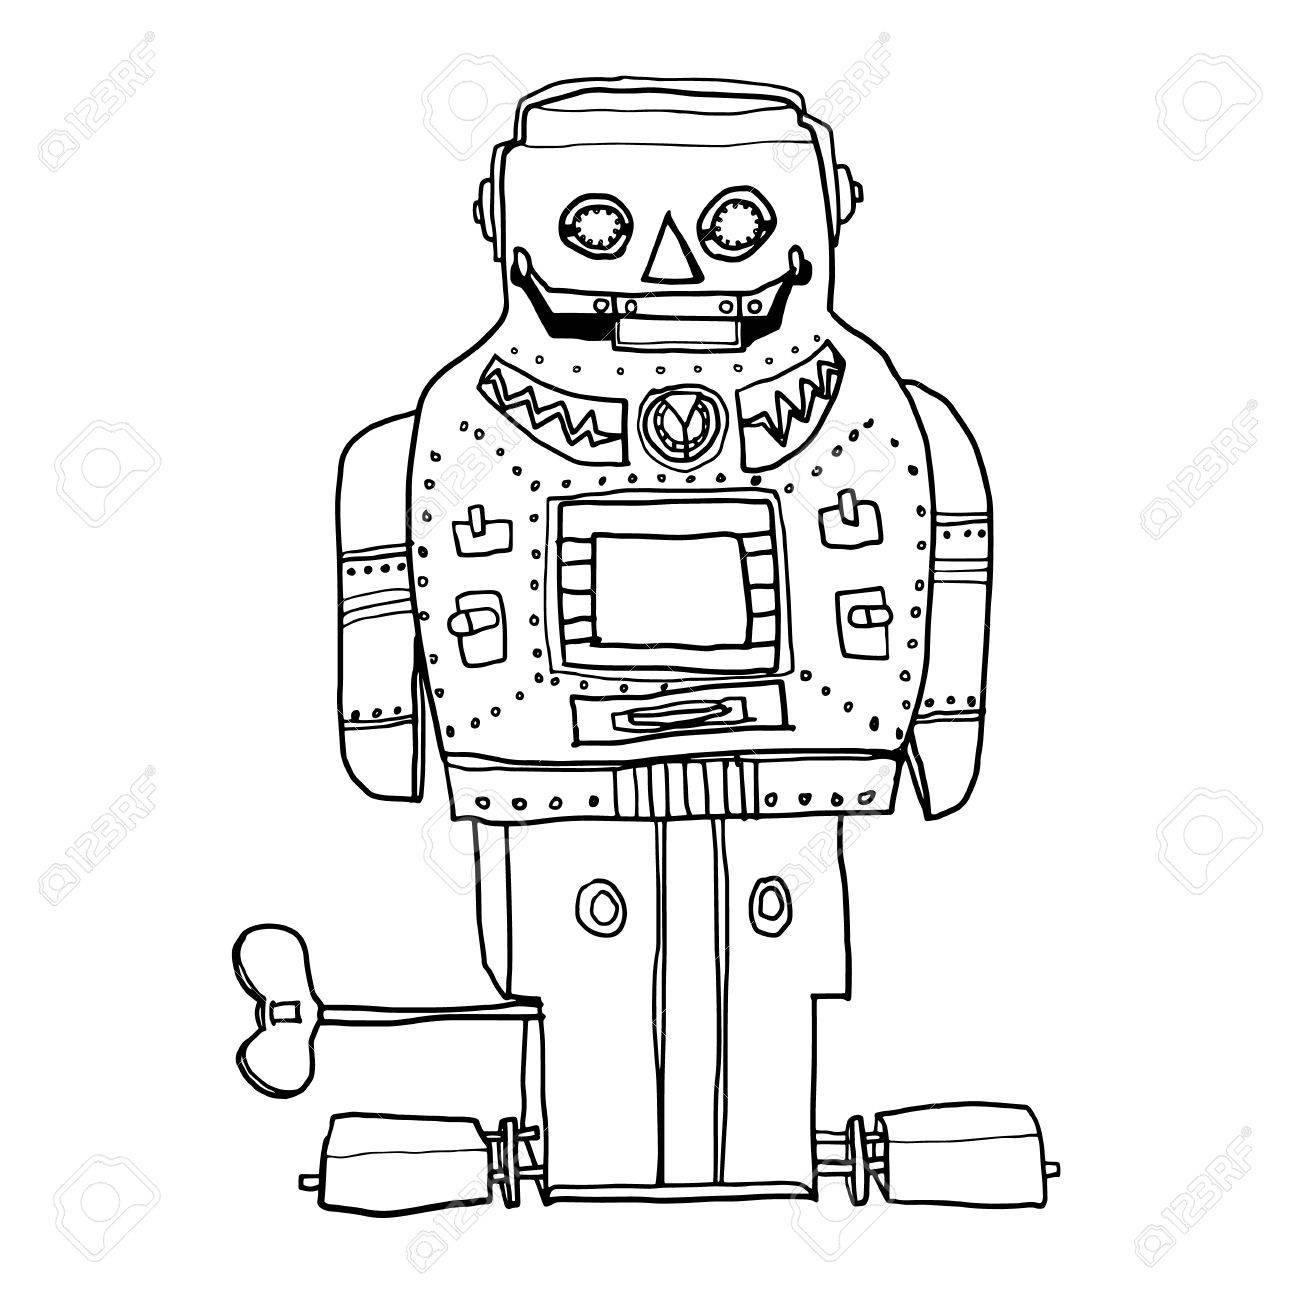 1300x1300 Vector Vintage Robot Toy Sparky Robot Hand Drawn Line Art Cute